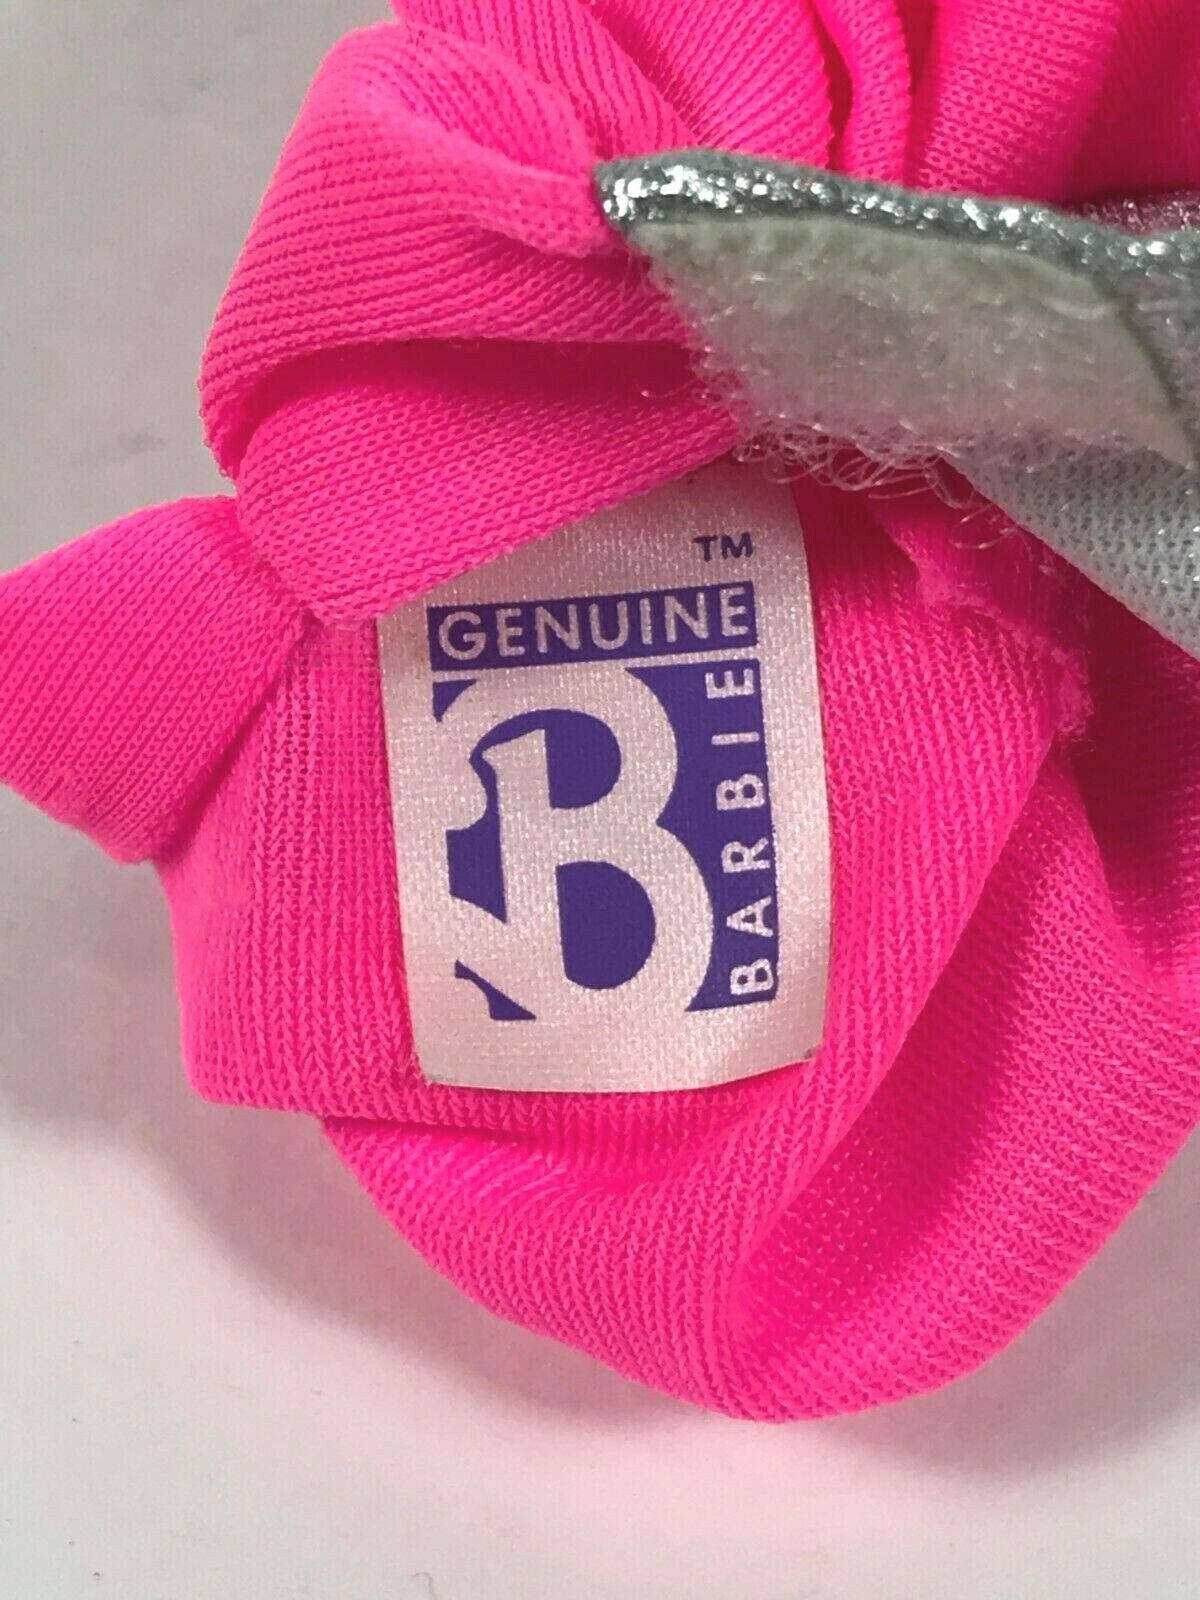 Vintage 1990 My First Barbie 4860 Easy On Fashions Pink Silver Dress Mattel - $7.99